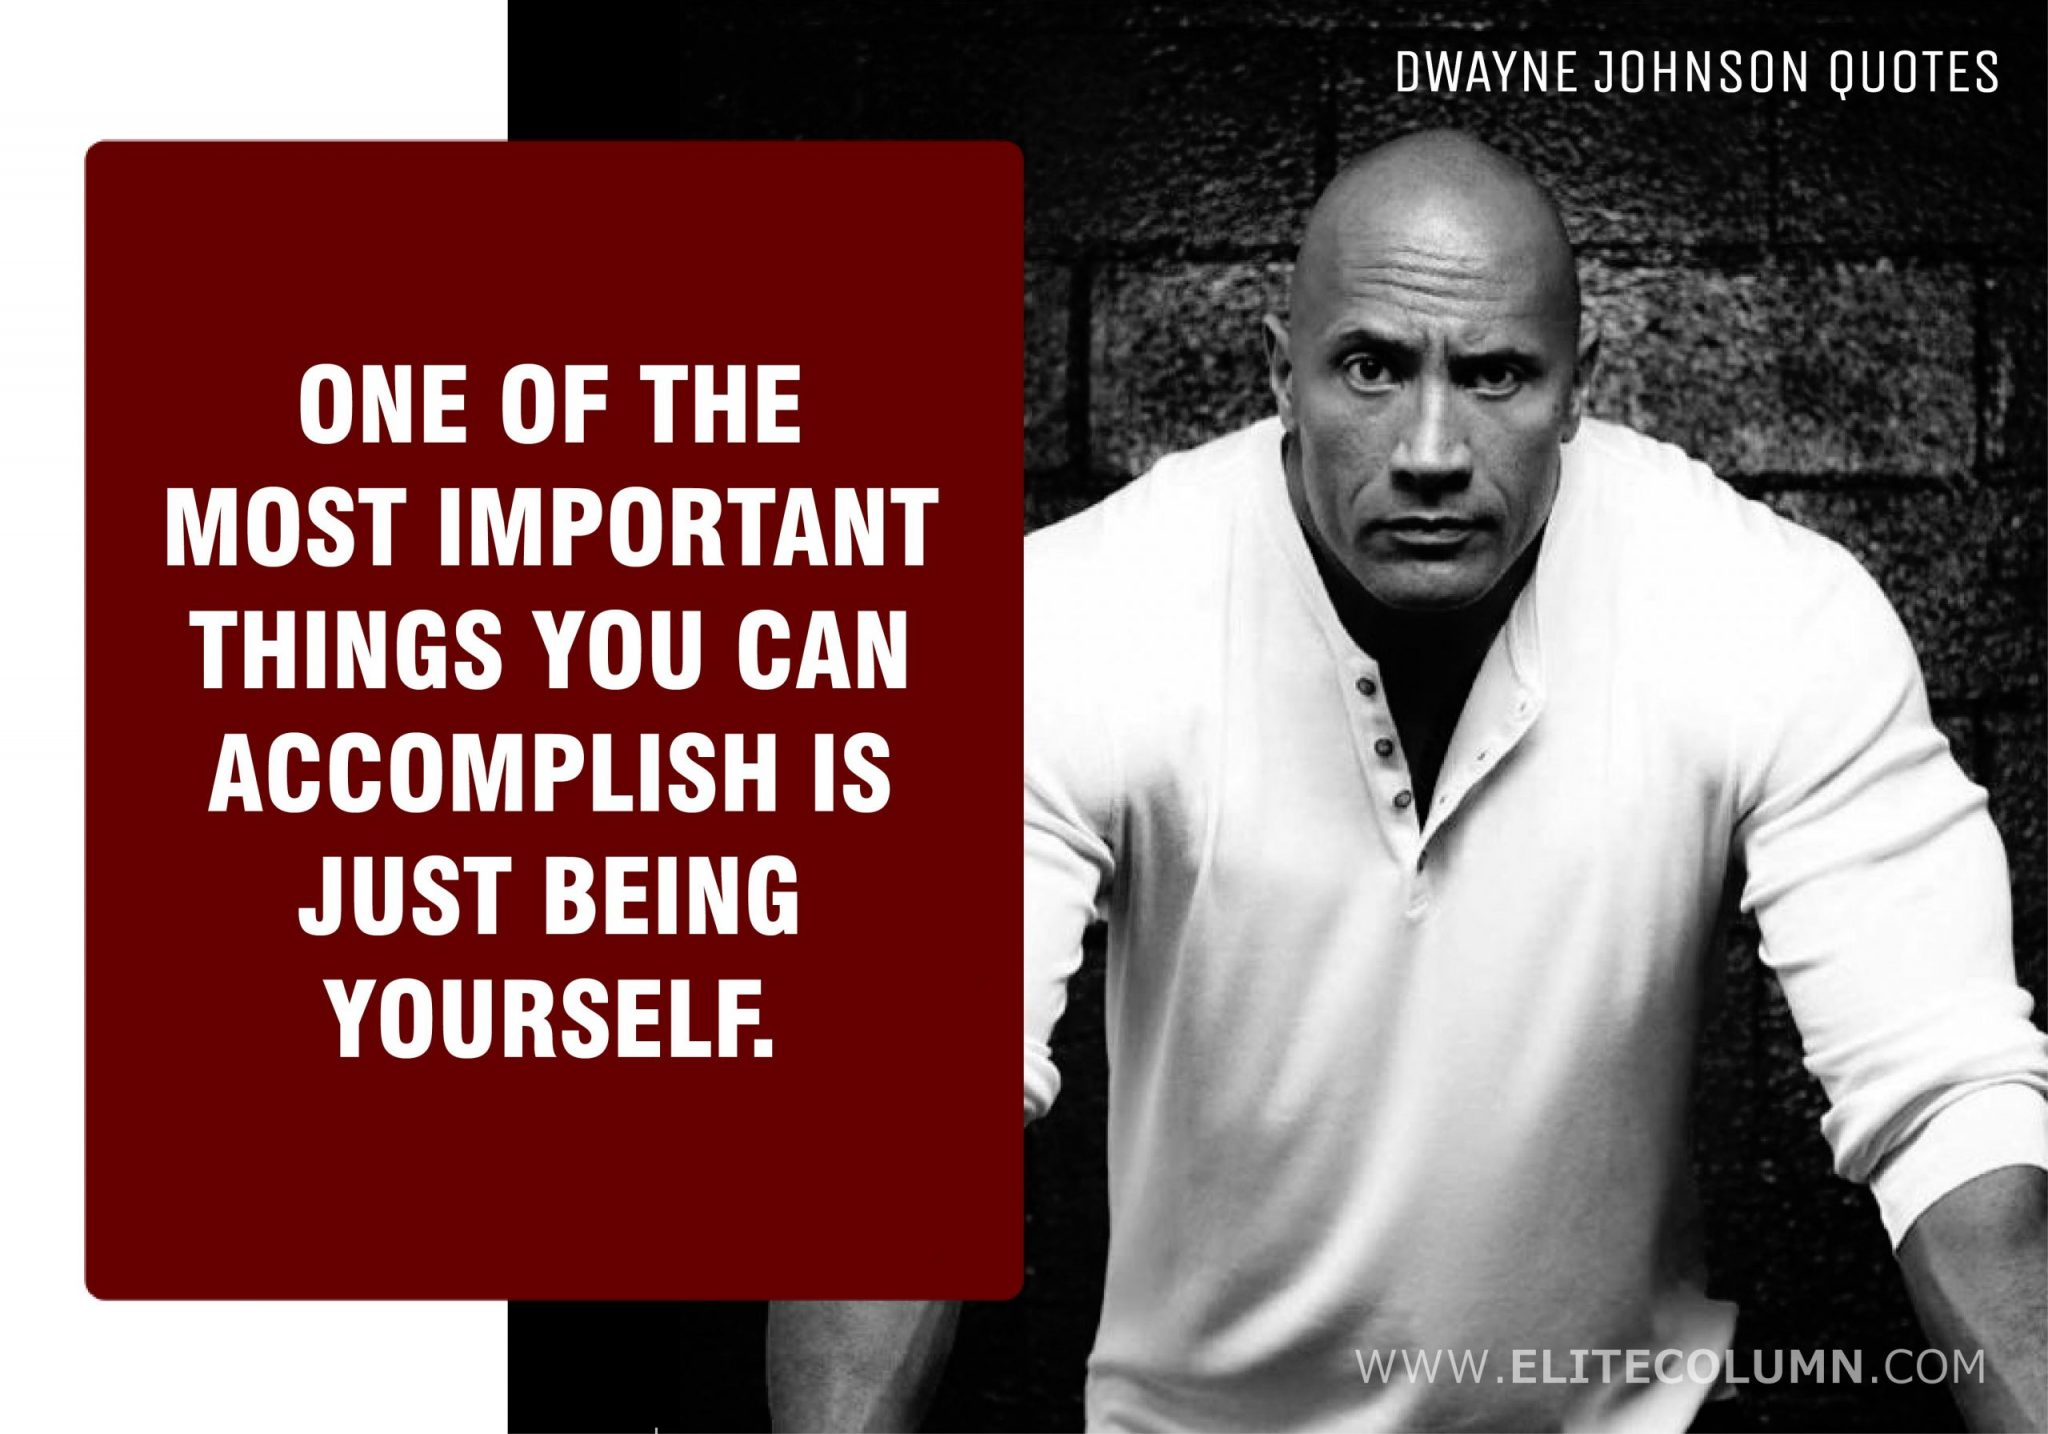 Dwayne Johnson Quotes (4)